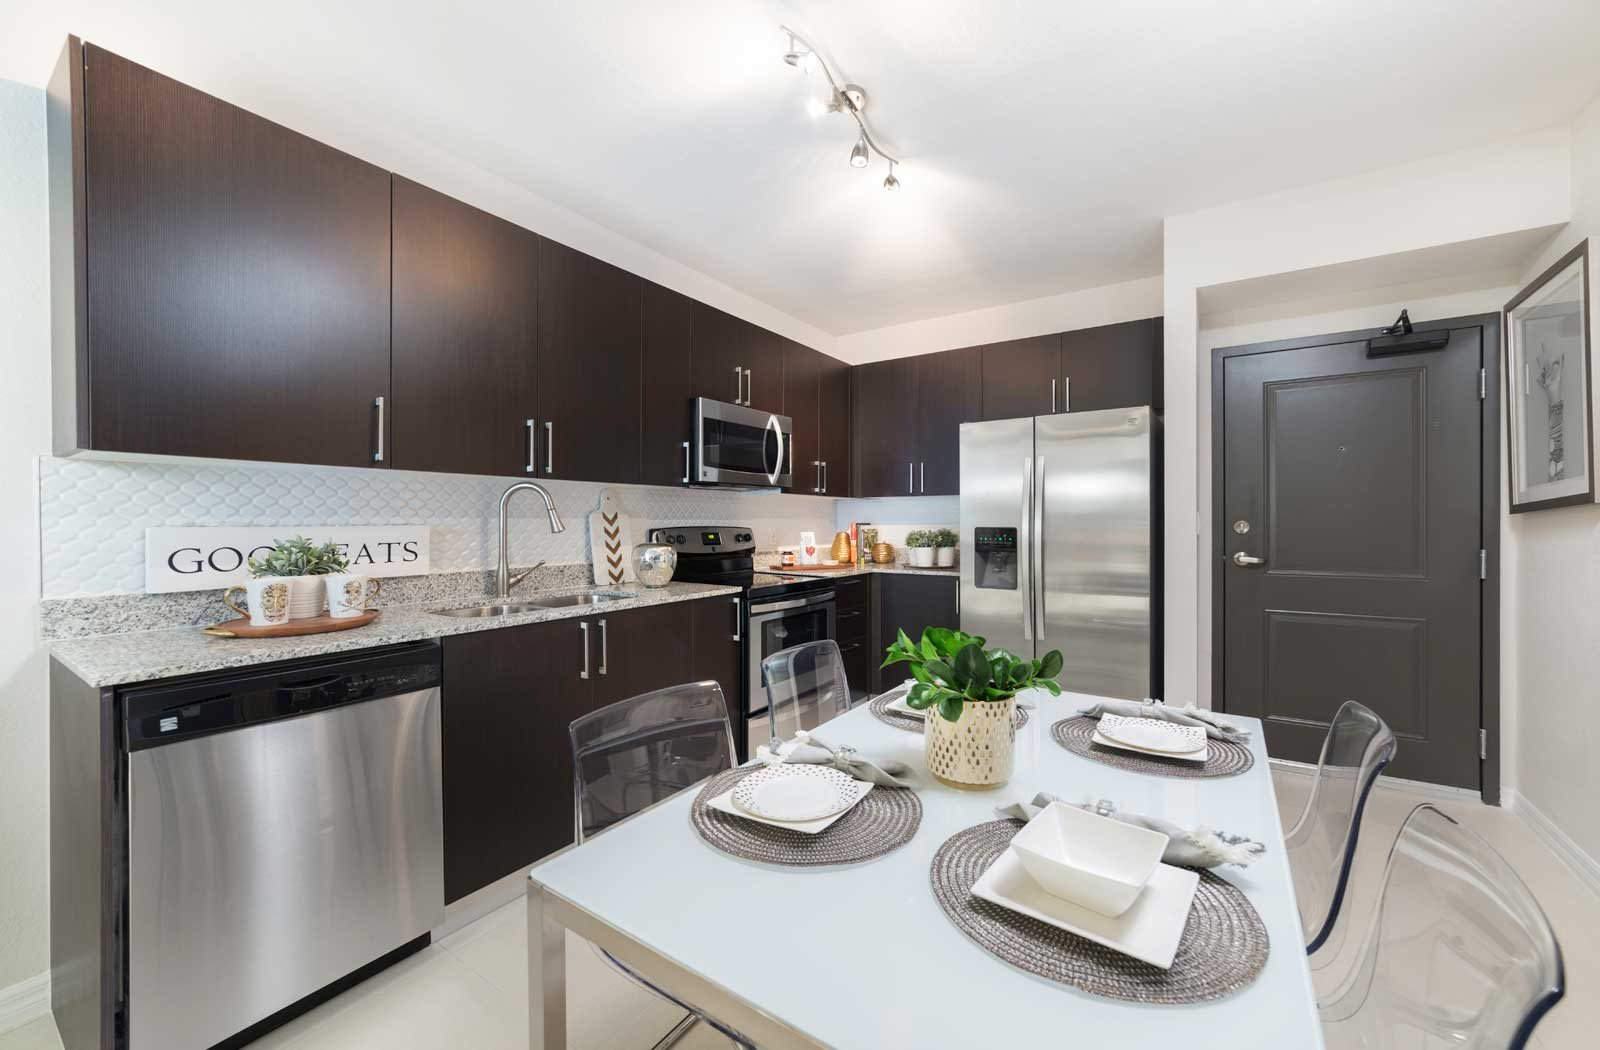 gourmet kitchen with granite countertops| District West Gables Apartments in West Miami, Florida